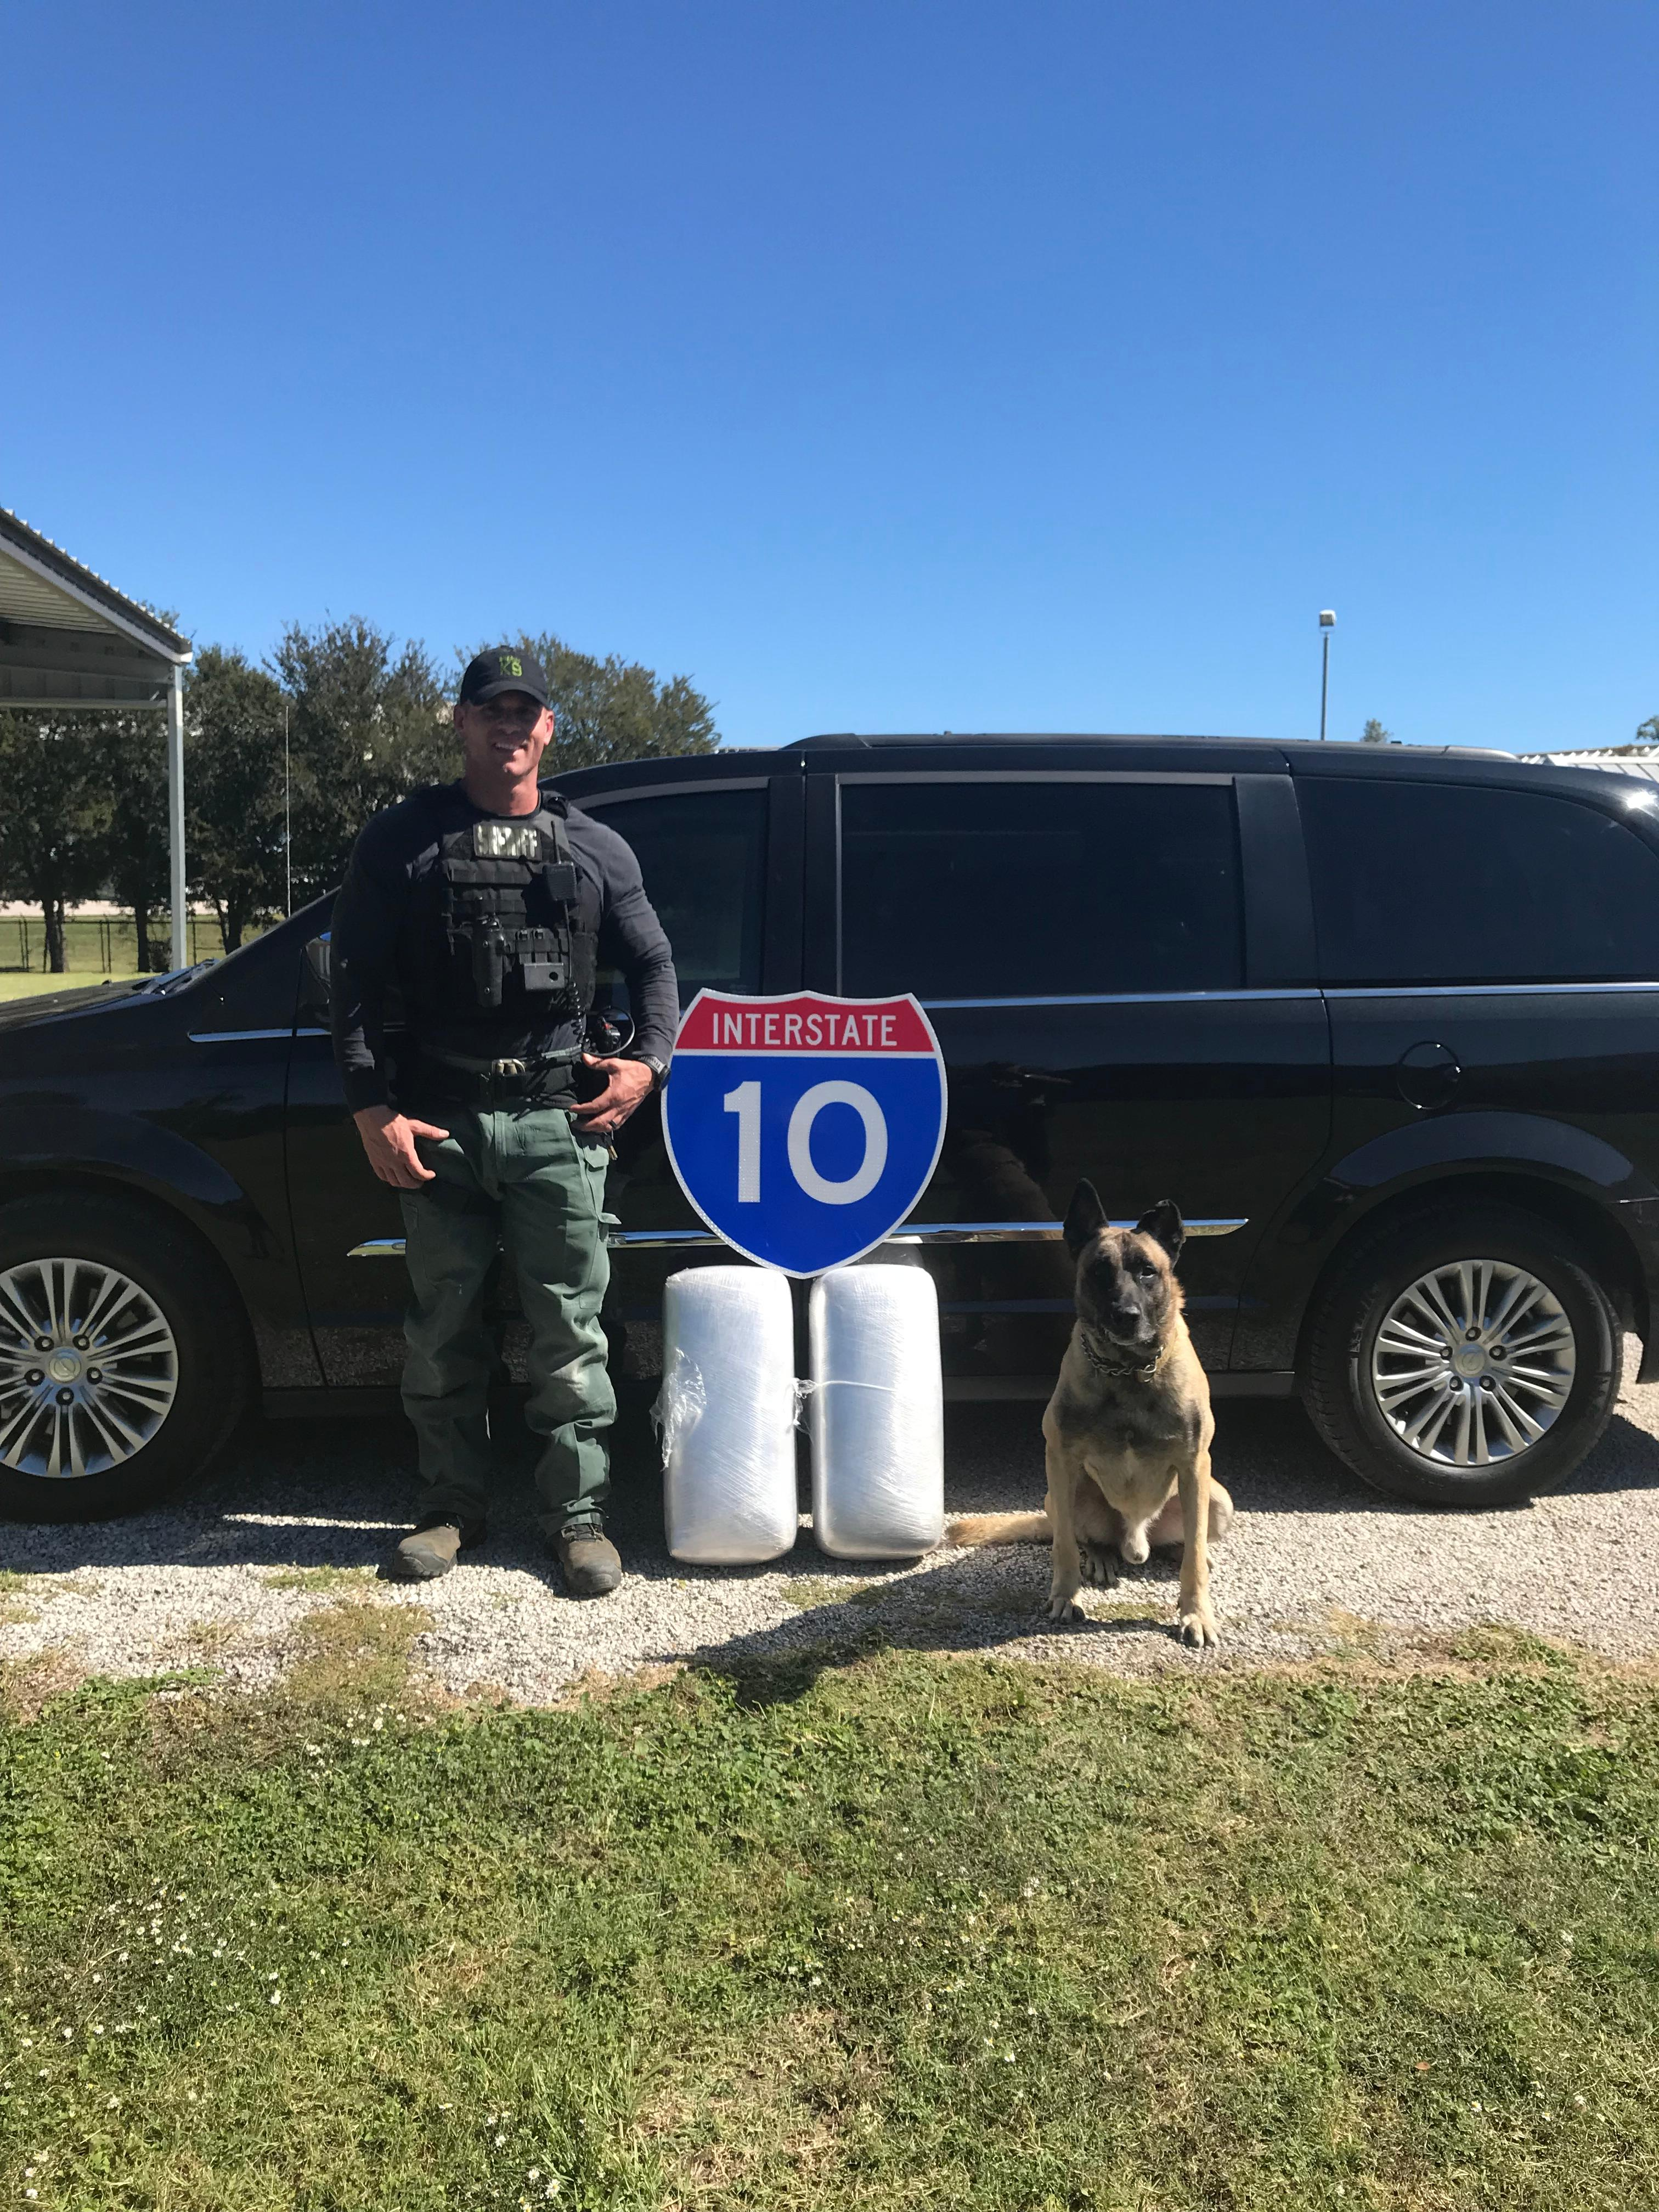 Sgt. Randy Thumann and K9 Lobos of the Fayette County Sheriff's Office. (Photo courtesy: Fayette County Sheriff's Office)